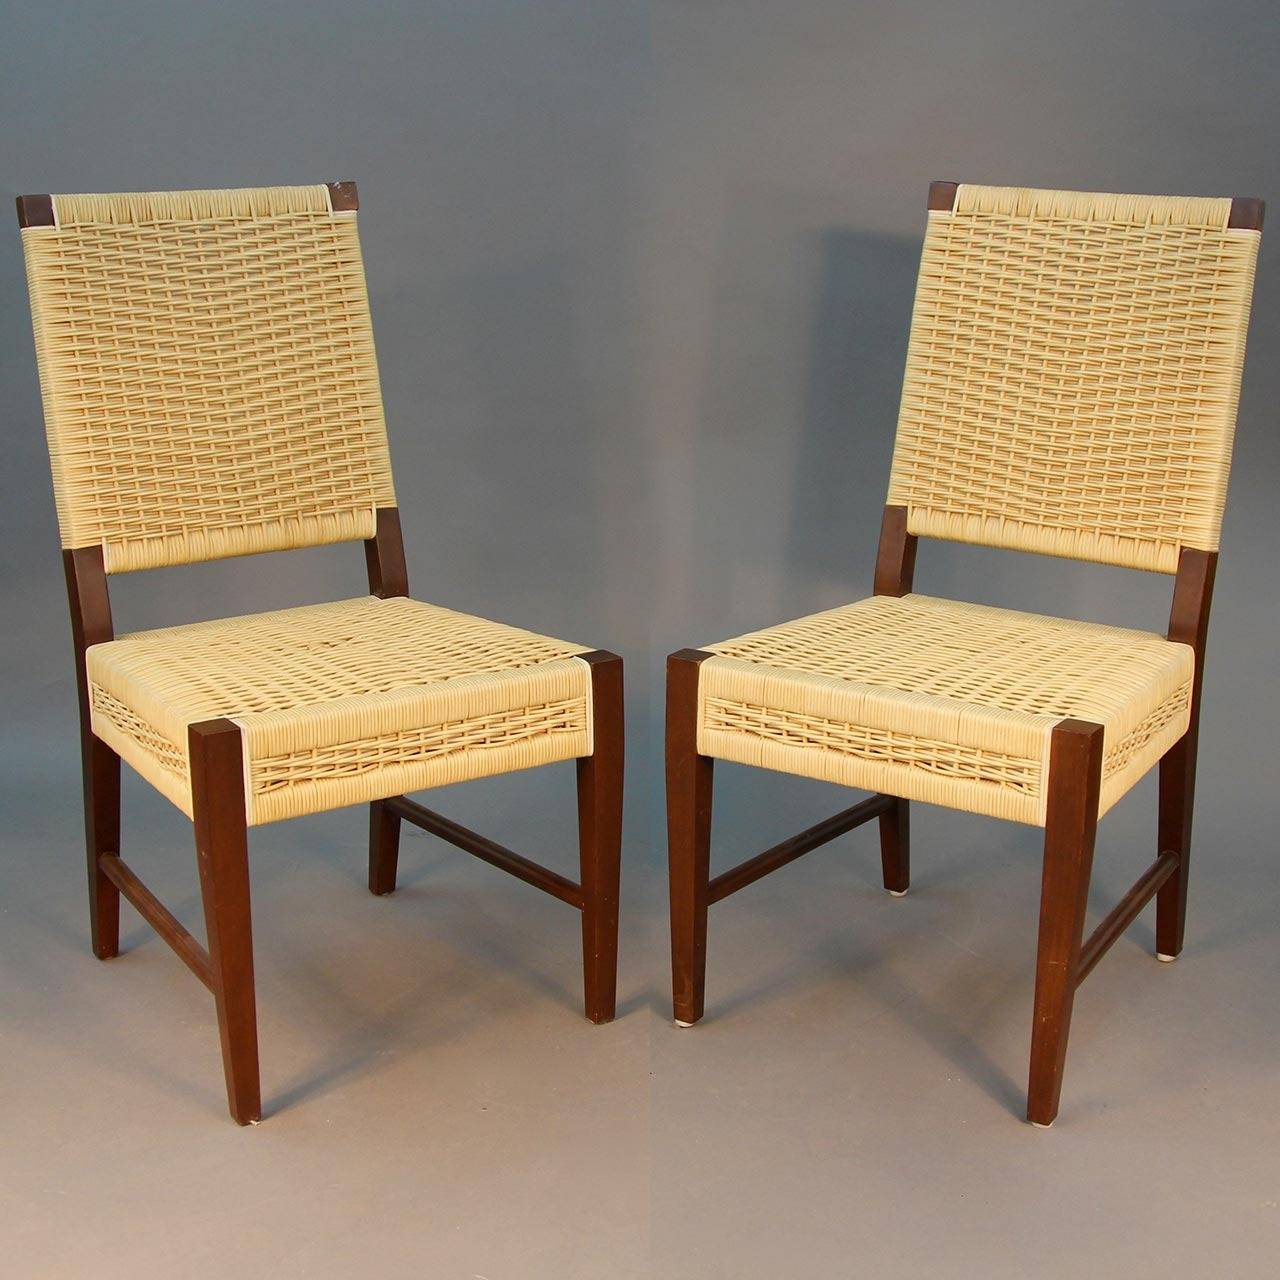 Set Of Four Donghia Dining Chairs In Merbau Wood With Raffia Weaving 2